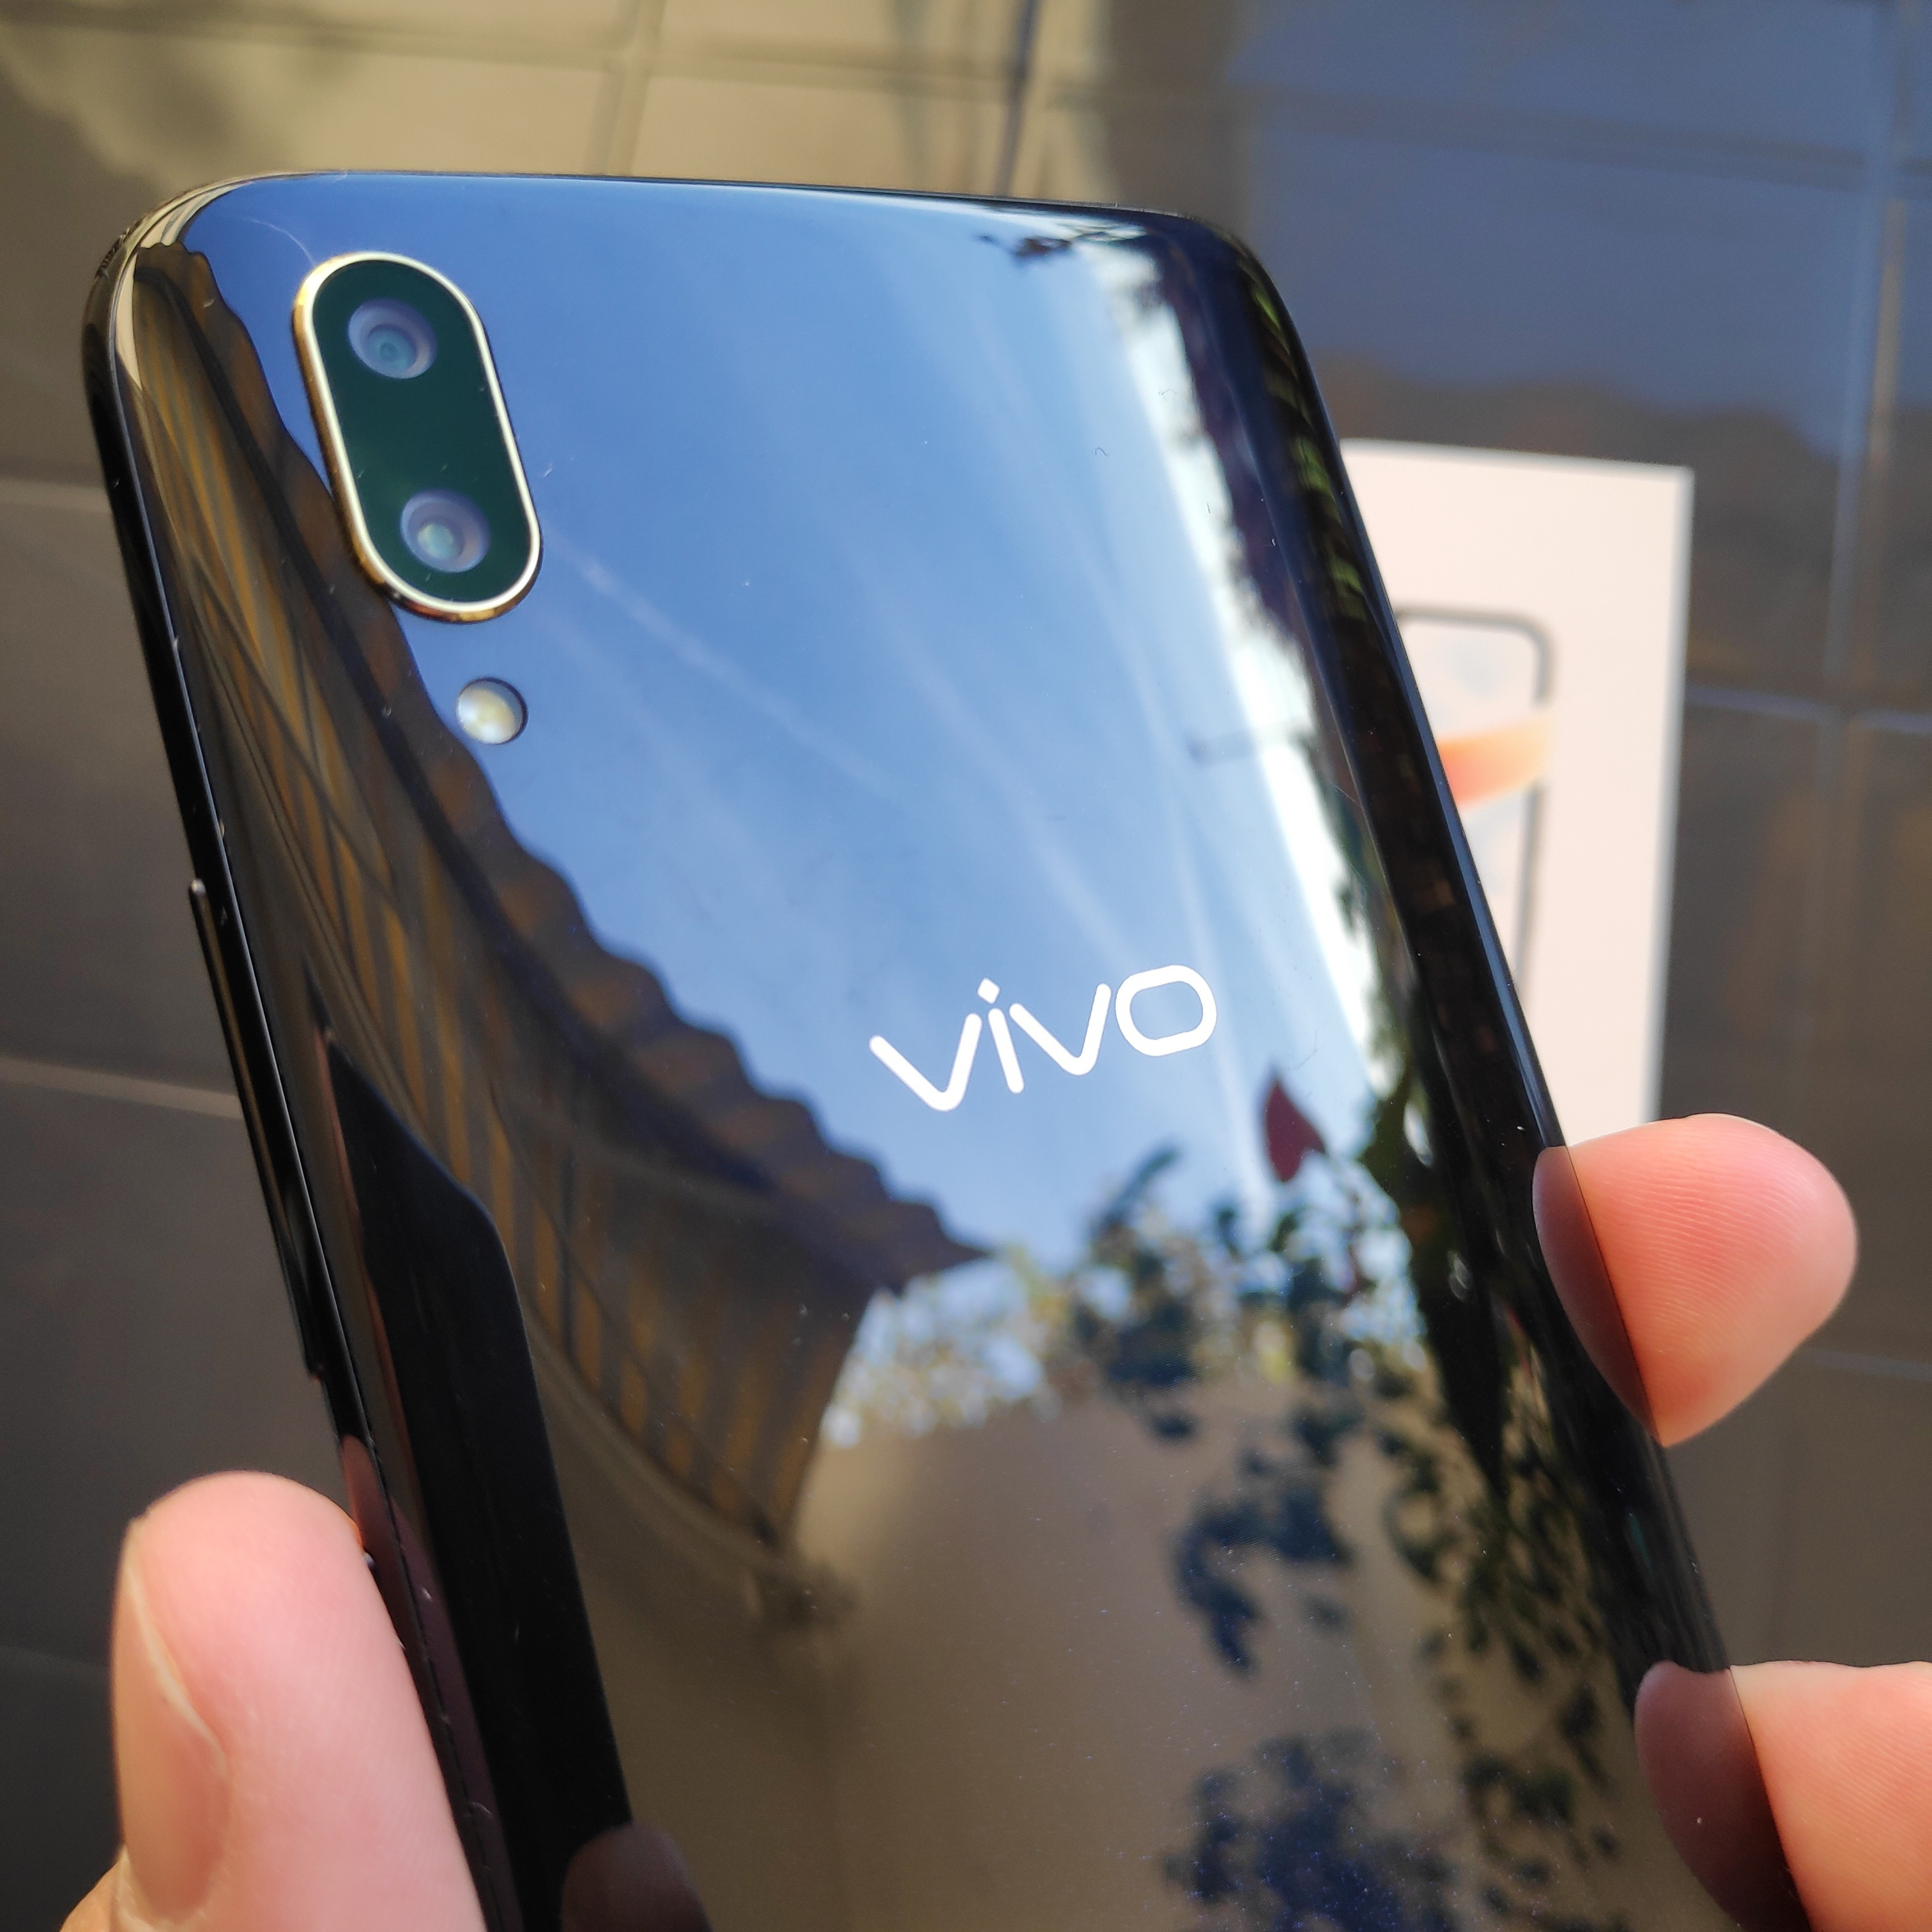 Le double capteur photo du Vivo V11